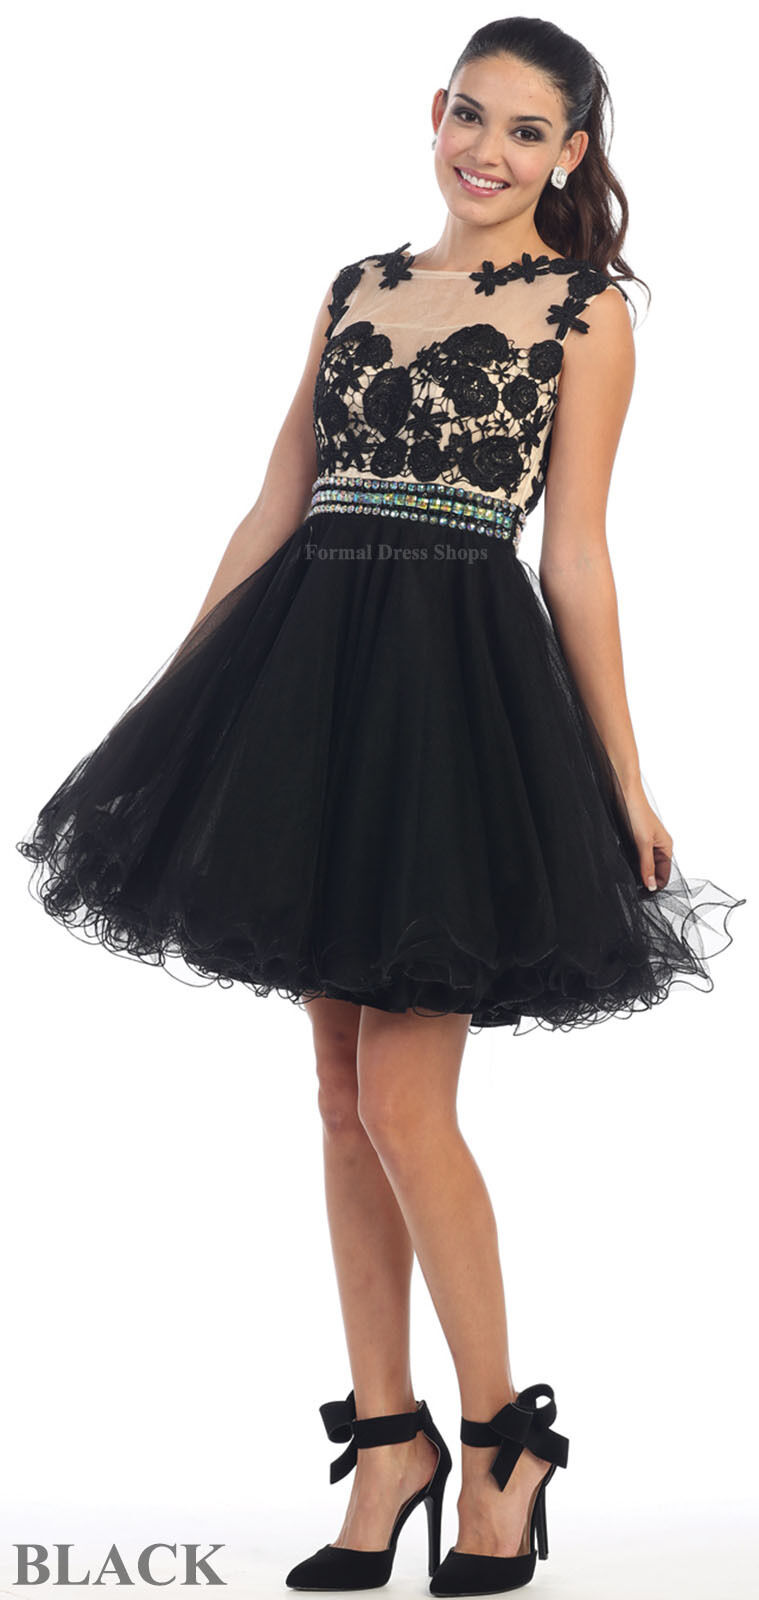 0407c6c049 Great SALE SHORT PROM COCKTAIL GRADUATION PARTY HOMECOMING SEMI ...